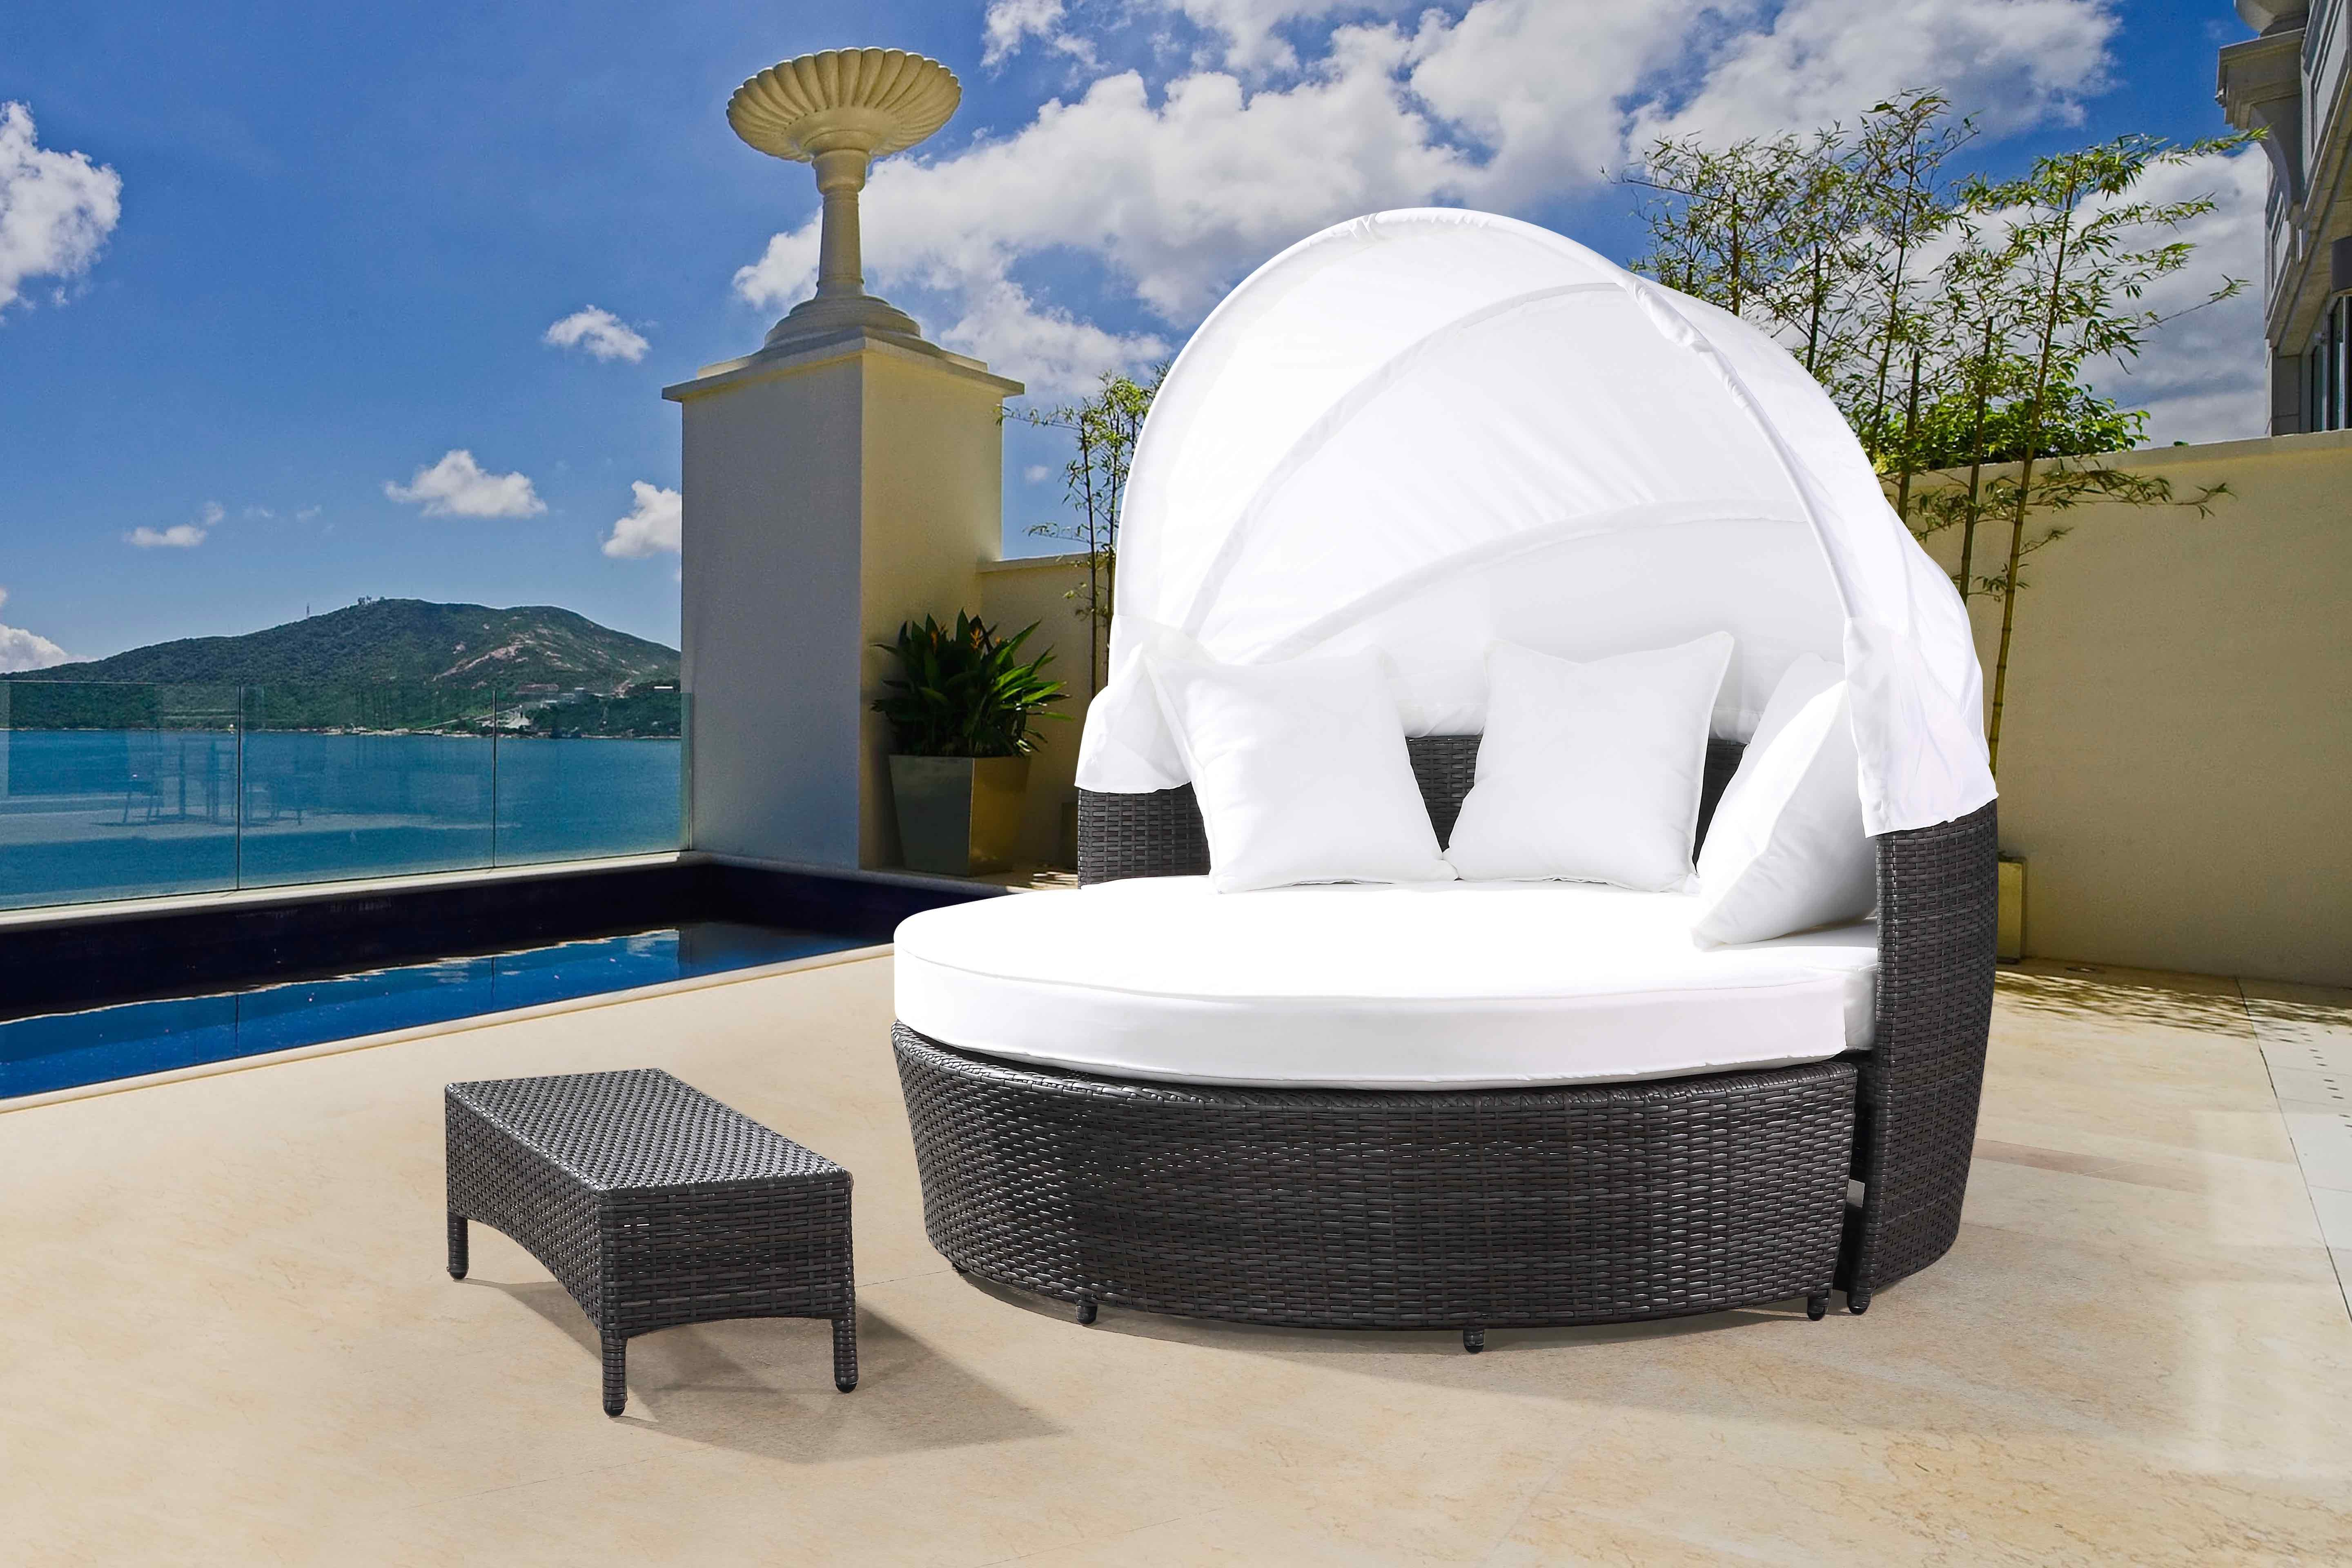 Carrasco Patio Daybed With Cushions Inside Most Popular Tripp Patio Daybeds With Cushions (View 8 of 20)